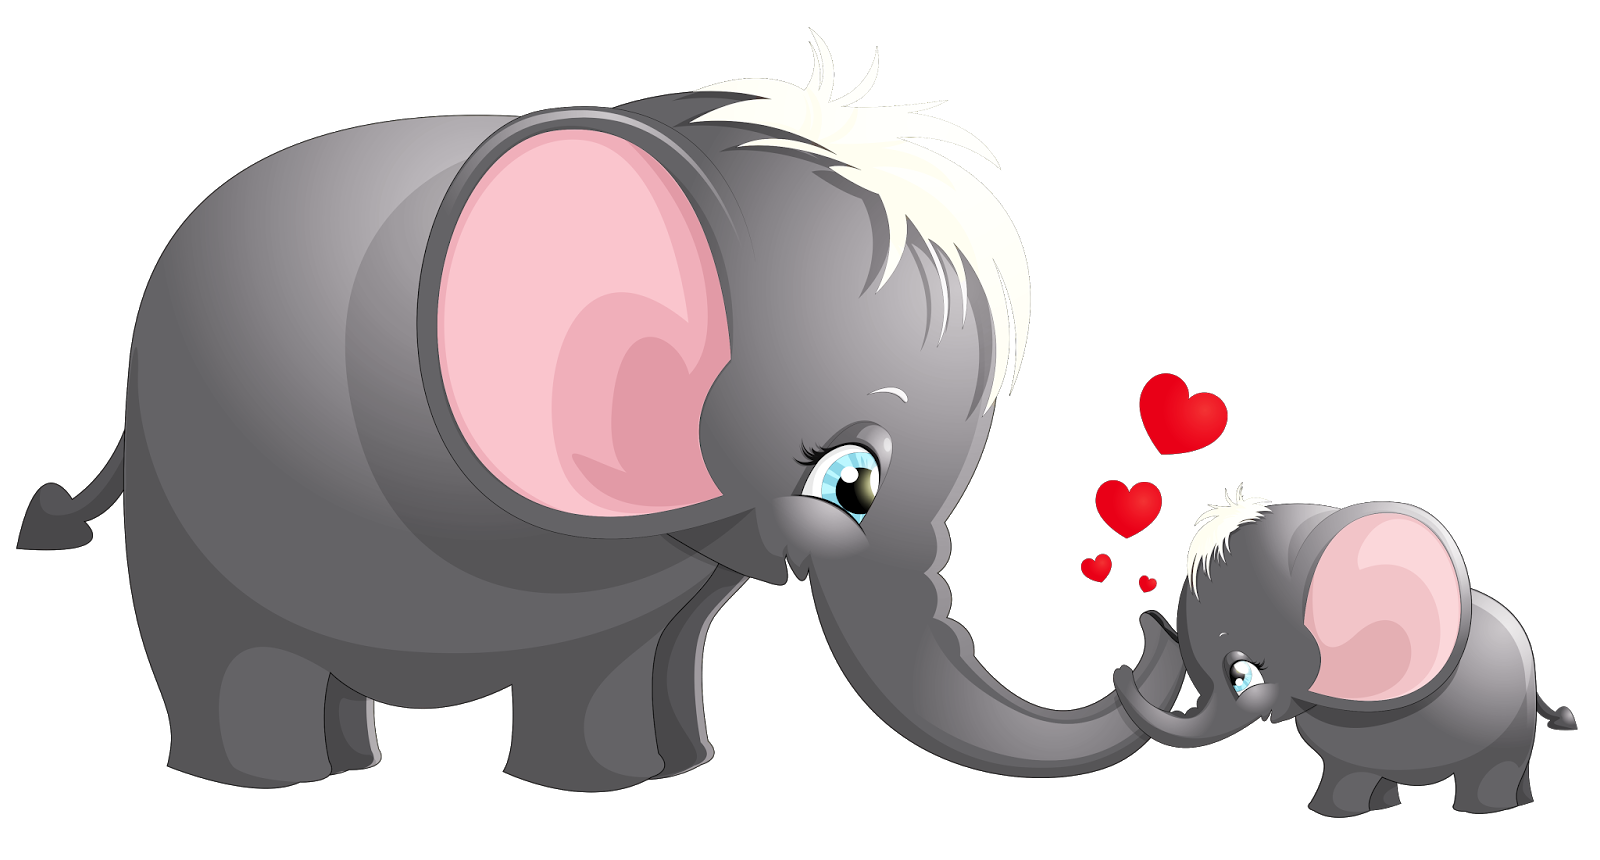 Elephant Clipart Diwali Picture 997813 Elephant Clipart Diwali Thousands of new elephant png image resources are added every day. webstockreview